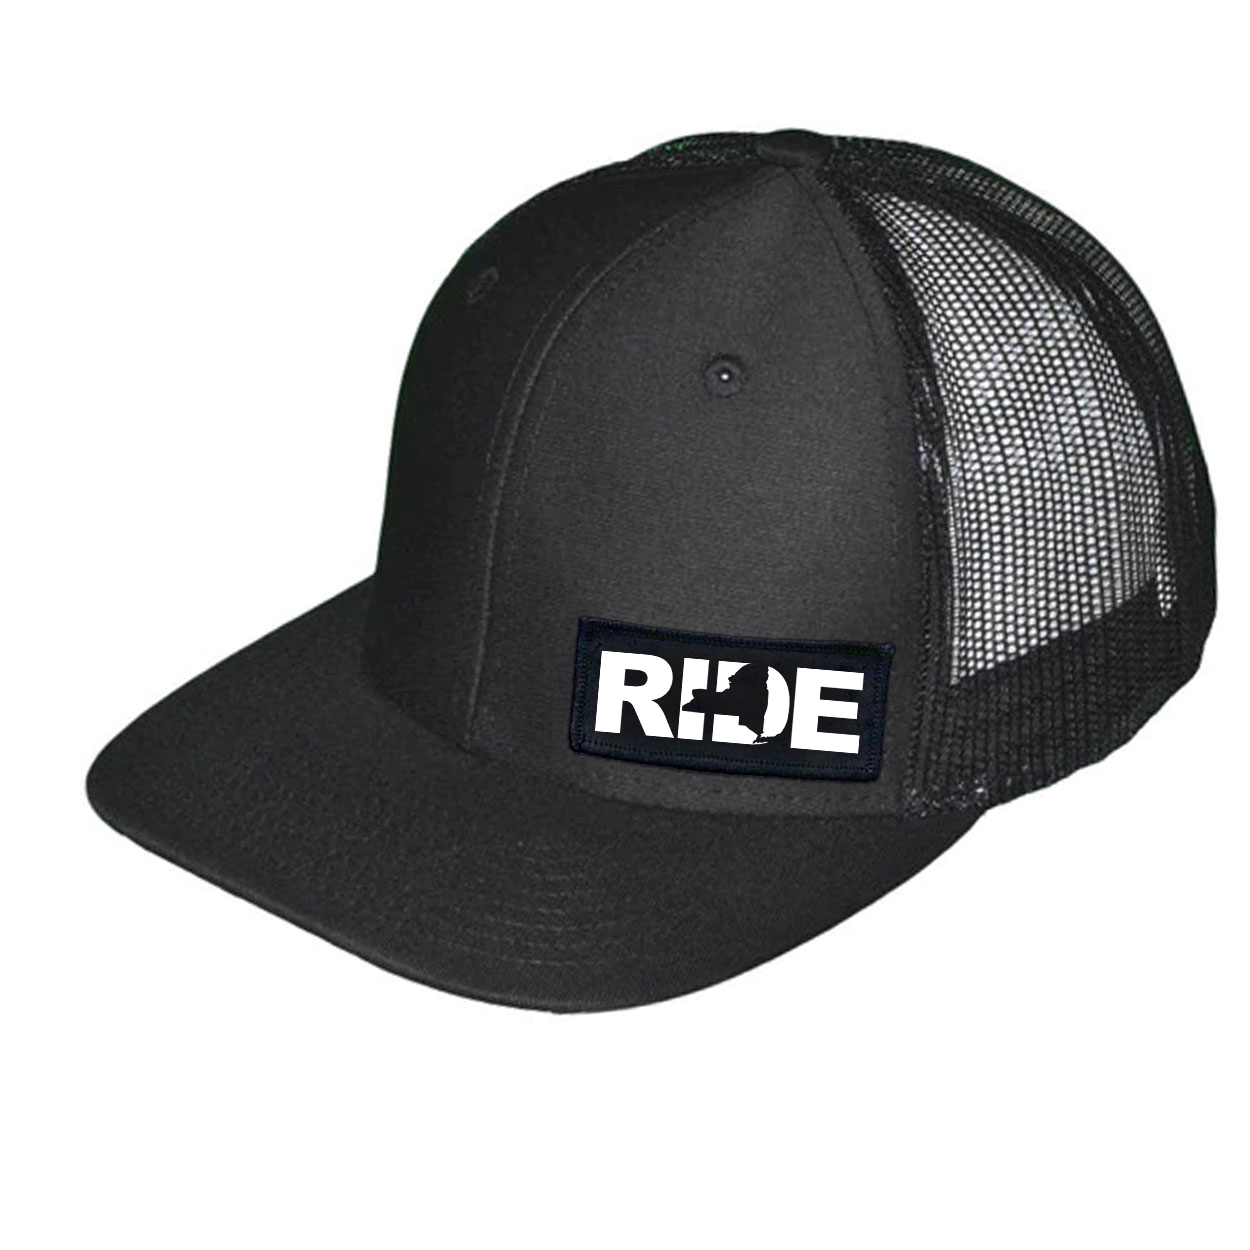 Ride New York Night Out Woven Patch Snapback Trucker Hat Black (White Logo)